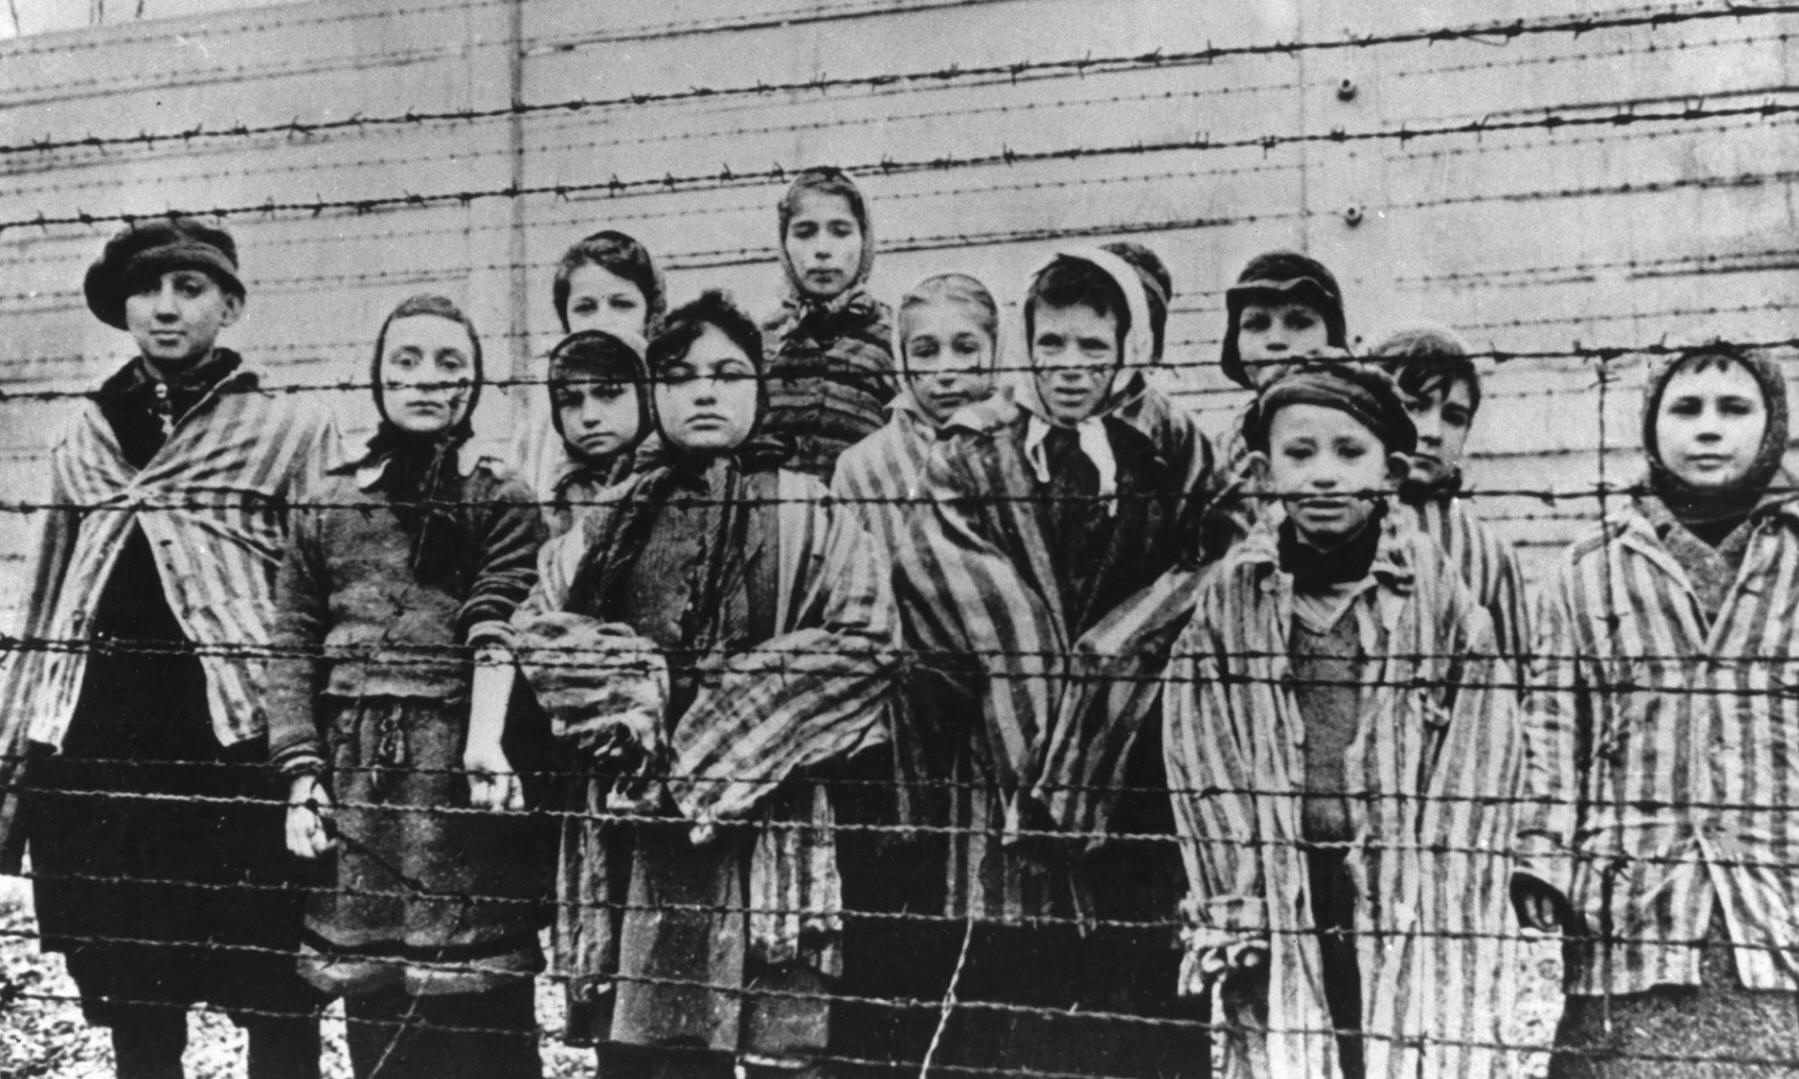 Psalm of the Sorrowing Children: A Poem For Elie Wiesel